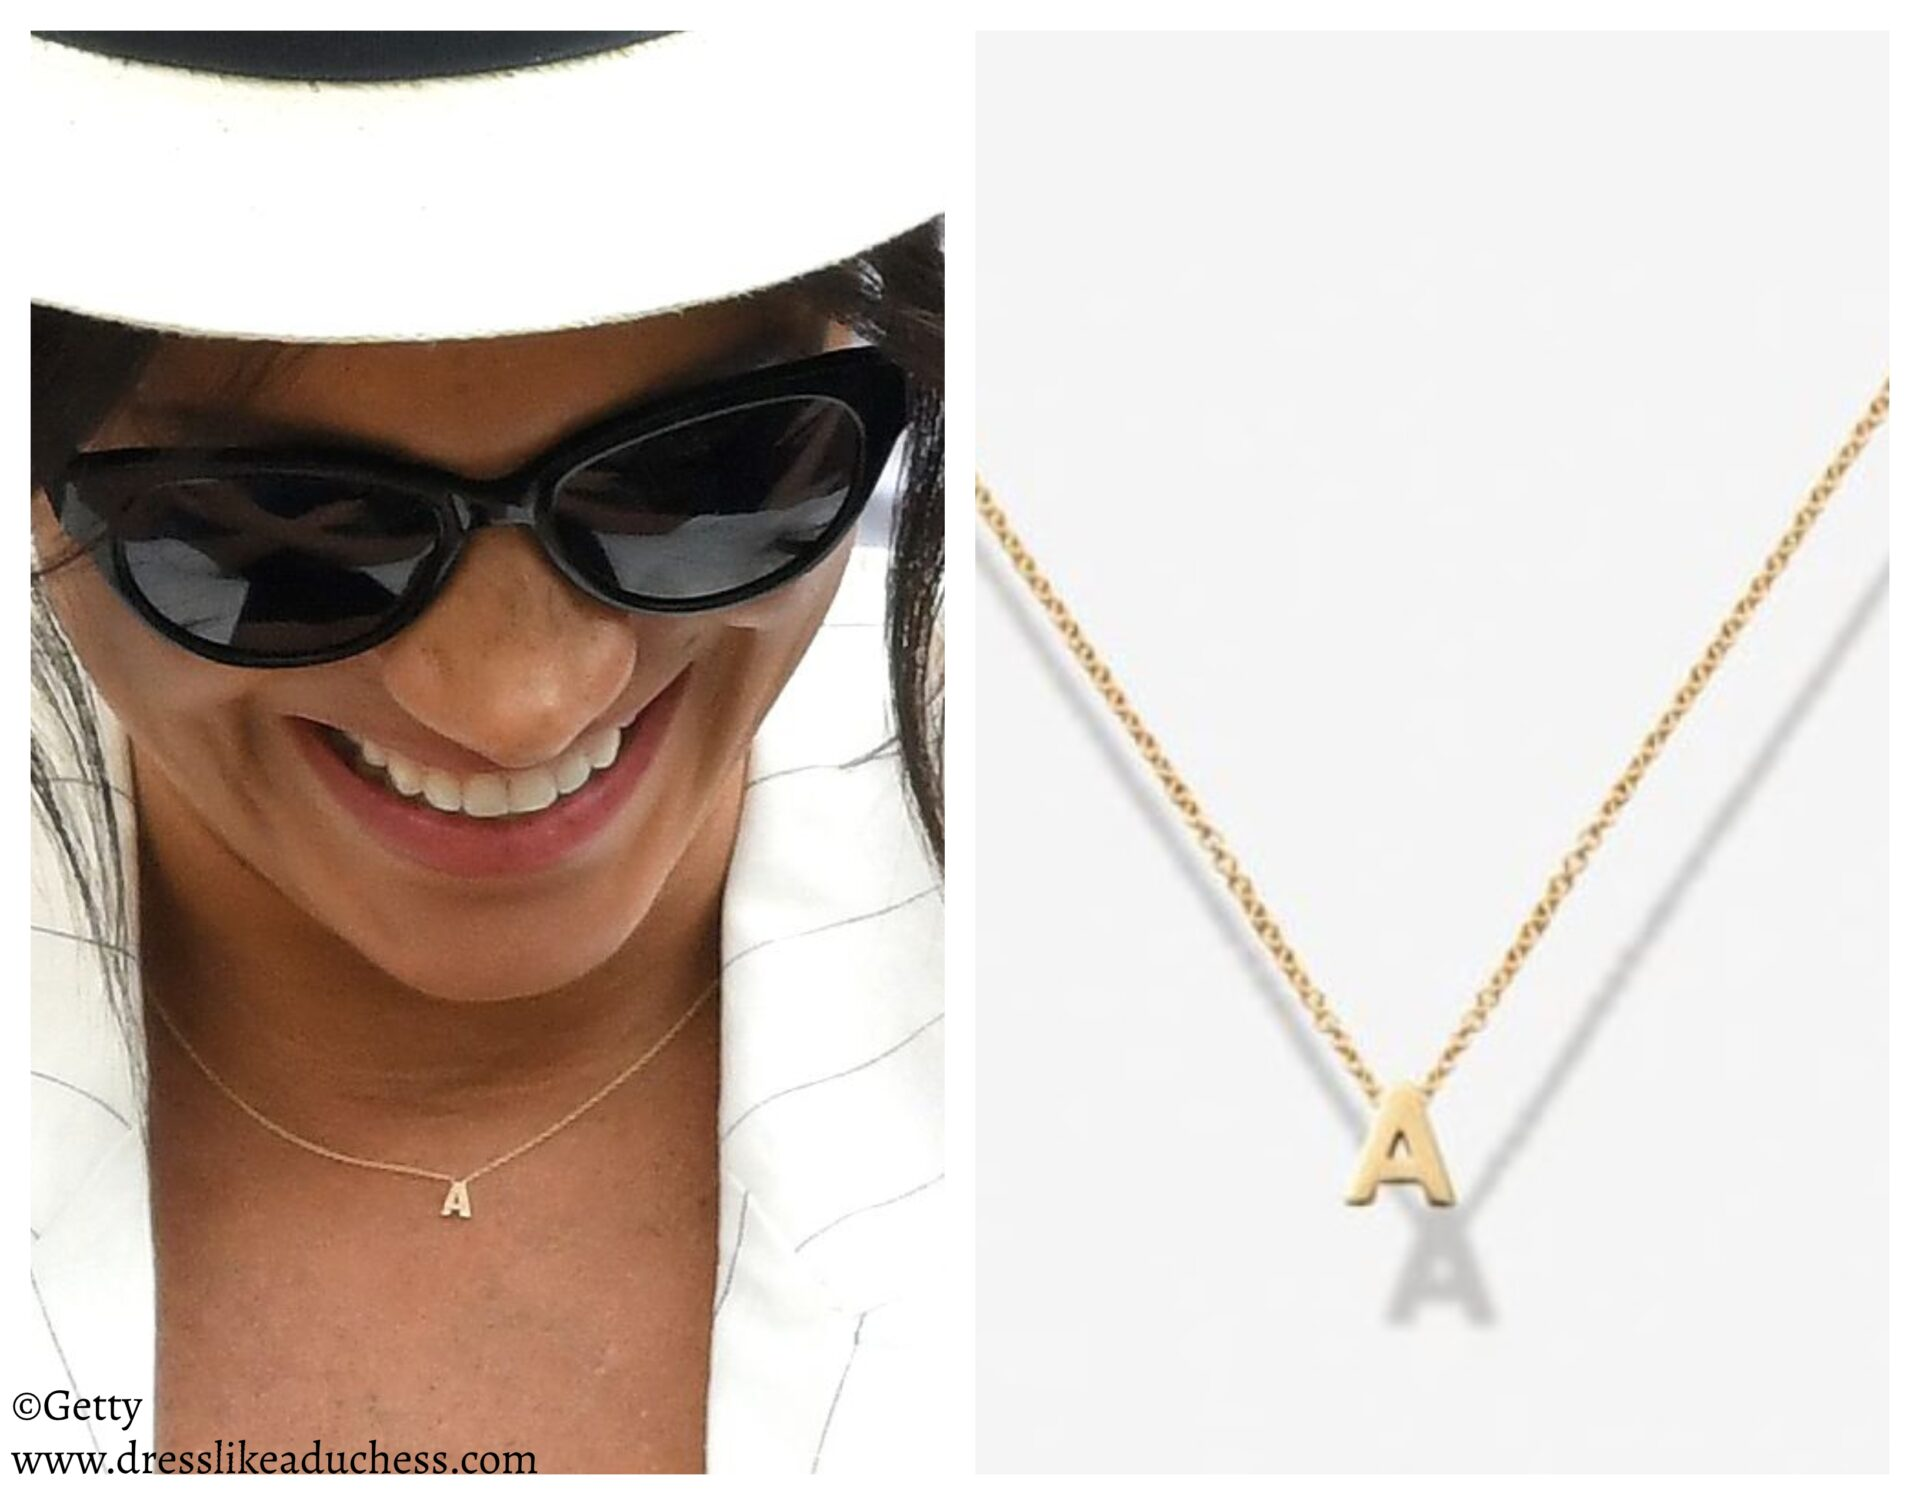 Verse 'A' Necklace Love Letters Collection-Meghan Markle